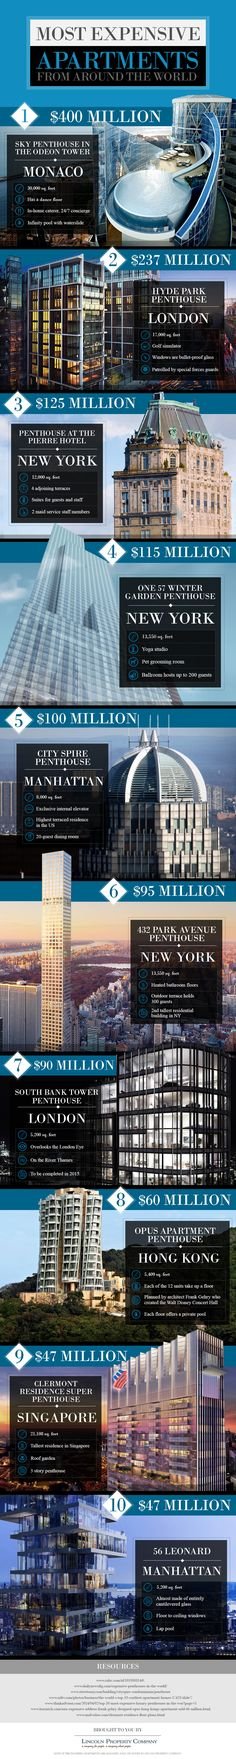 Most Expensive Apartments from Around The World #infographic #RealEstate #Apartments